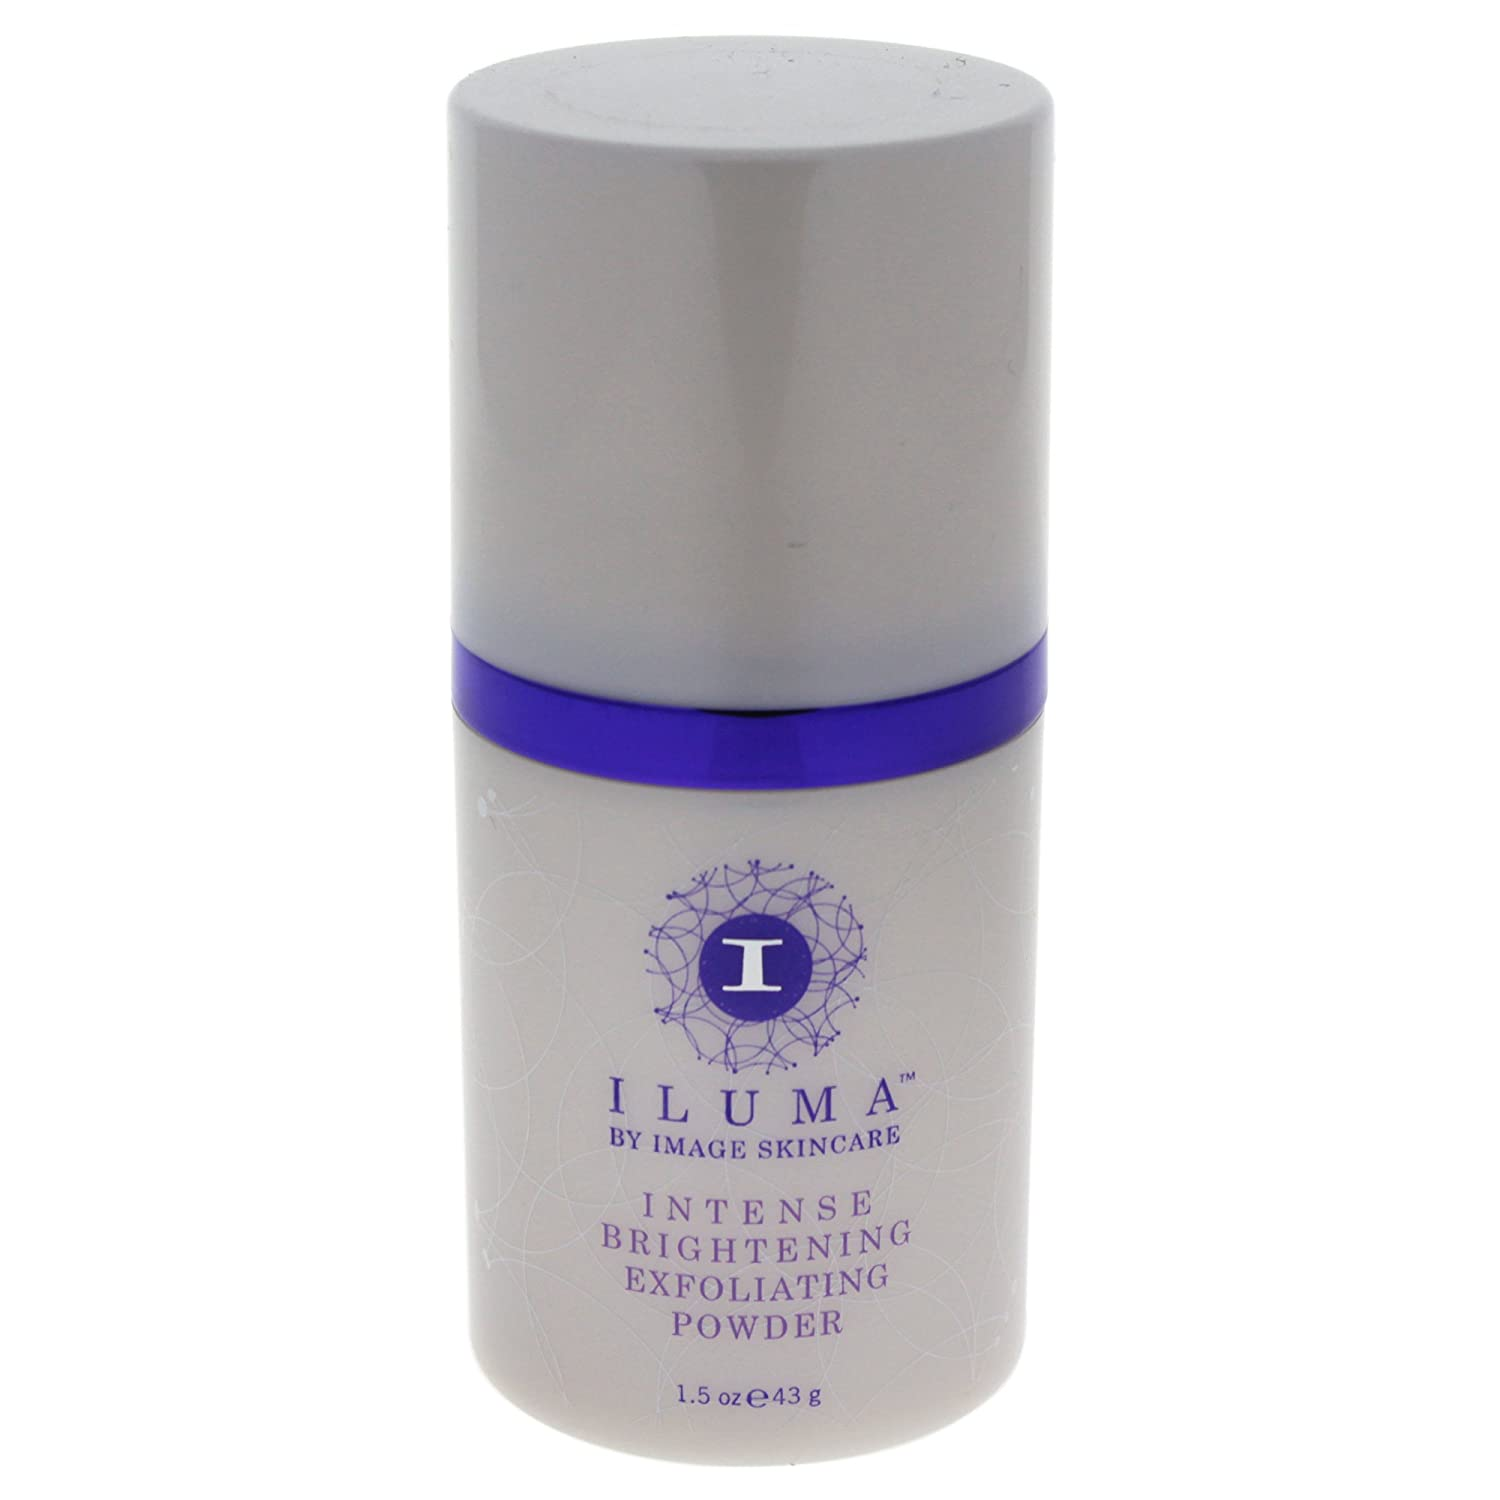 IMAGE Skincare Iluma Intense Brightening Exfoliating Powder, 1.5 oz.